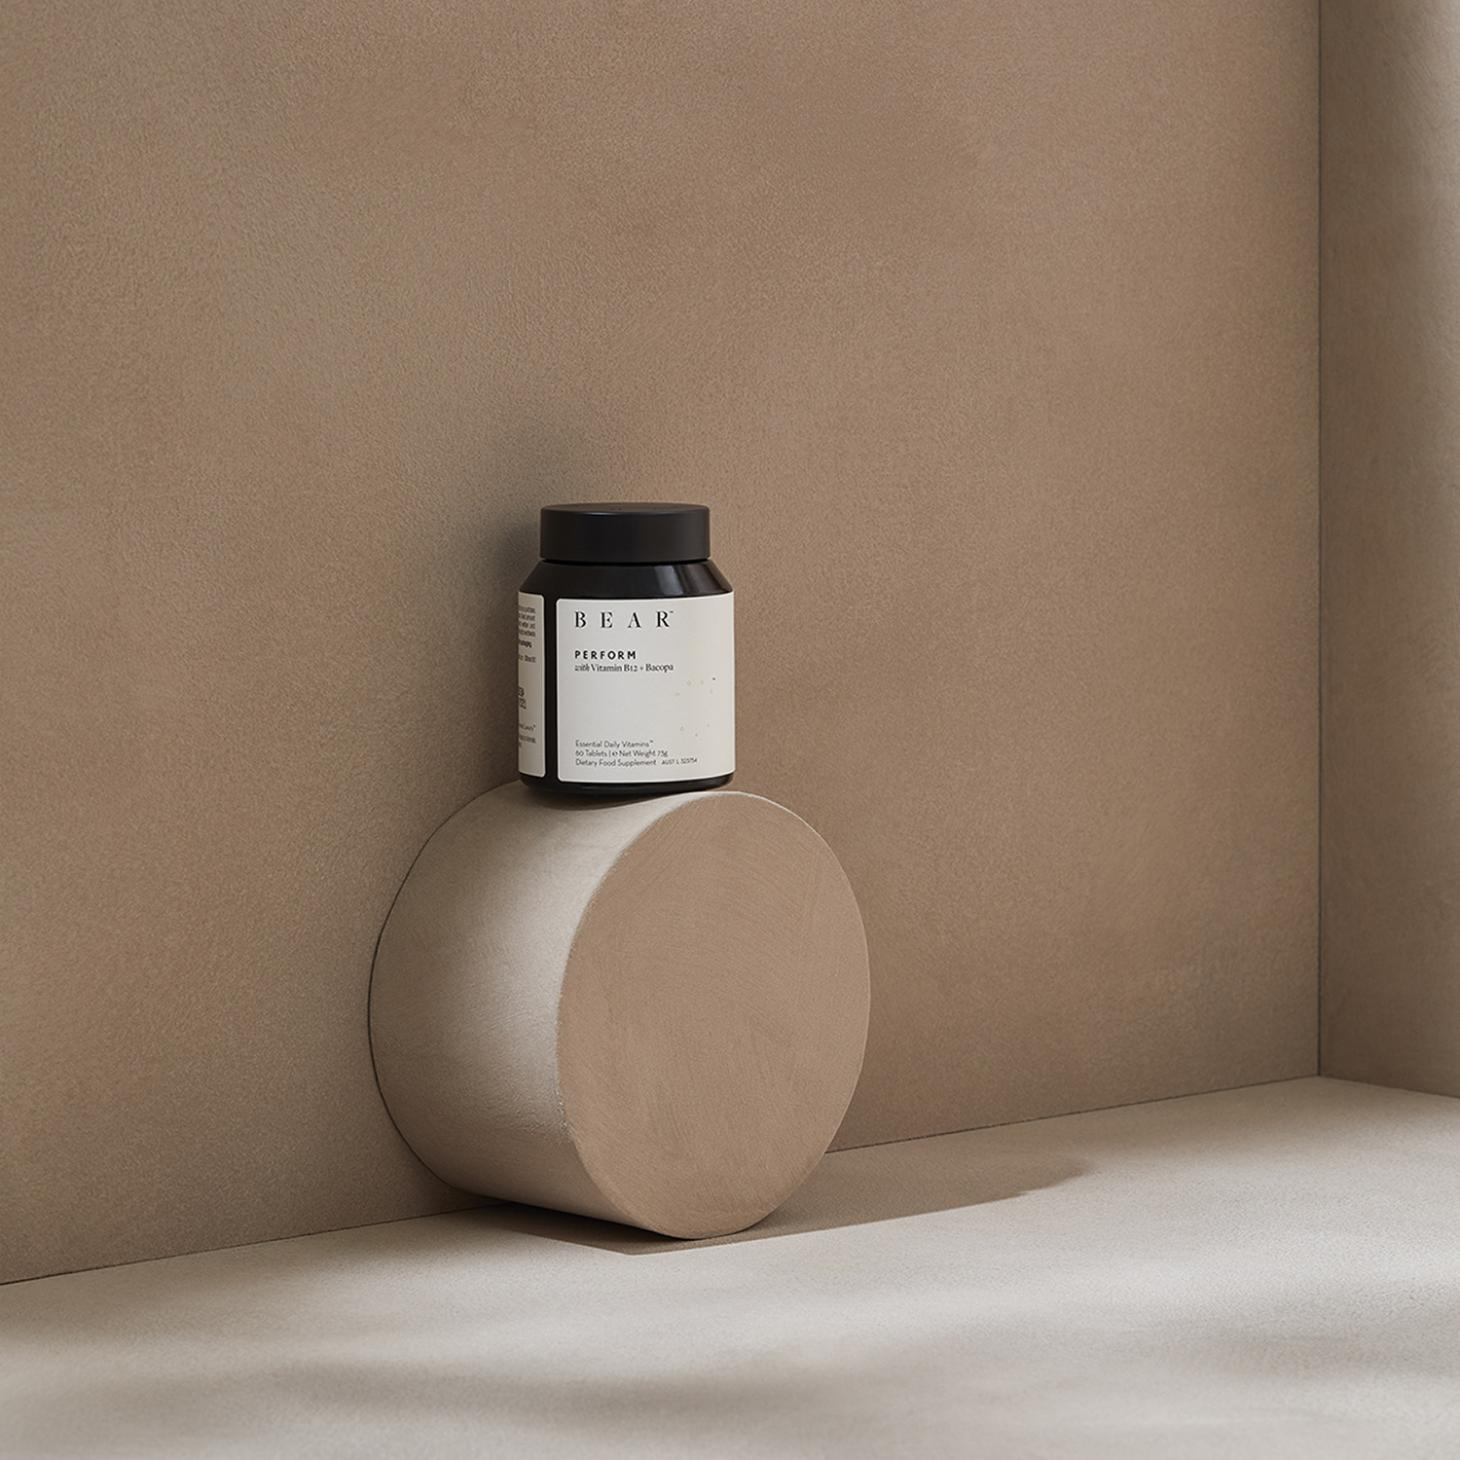 Black supplements bottle displayed against a beige wall